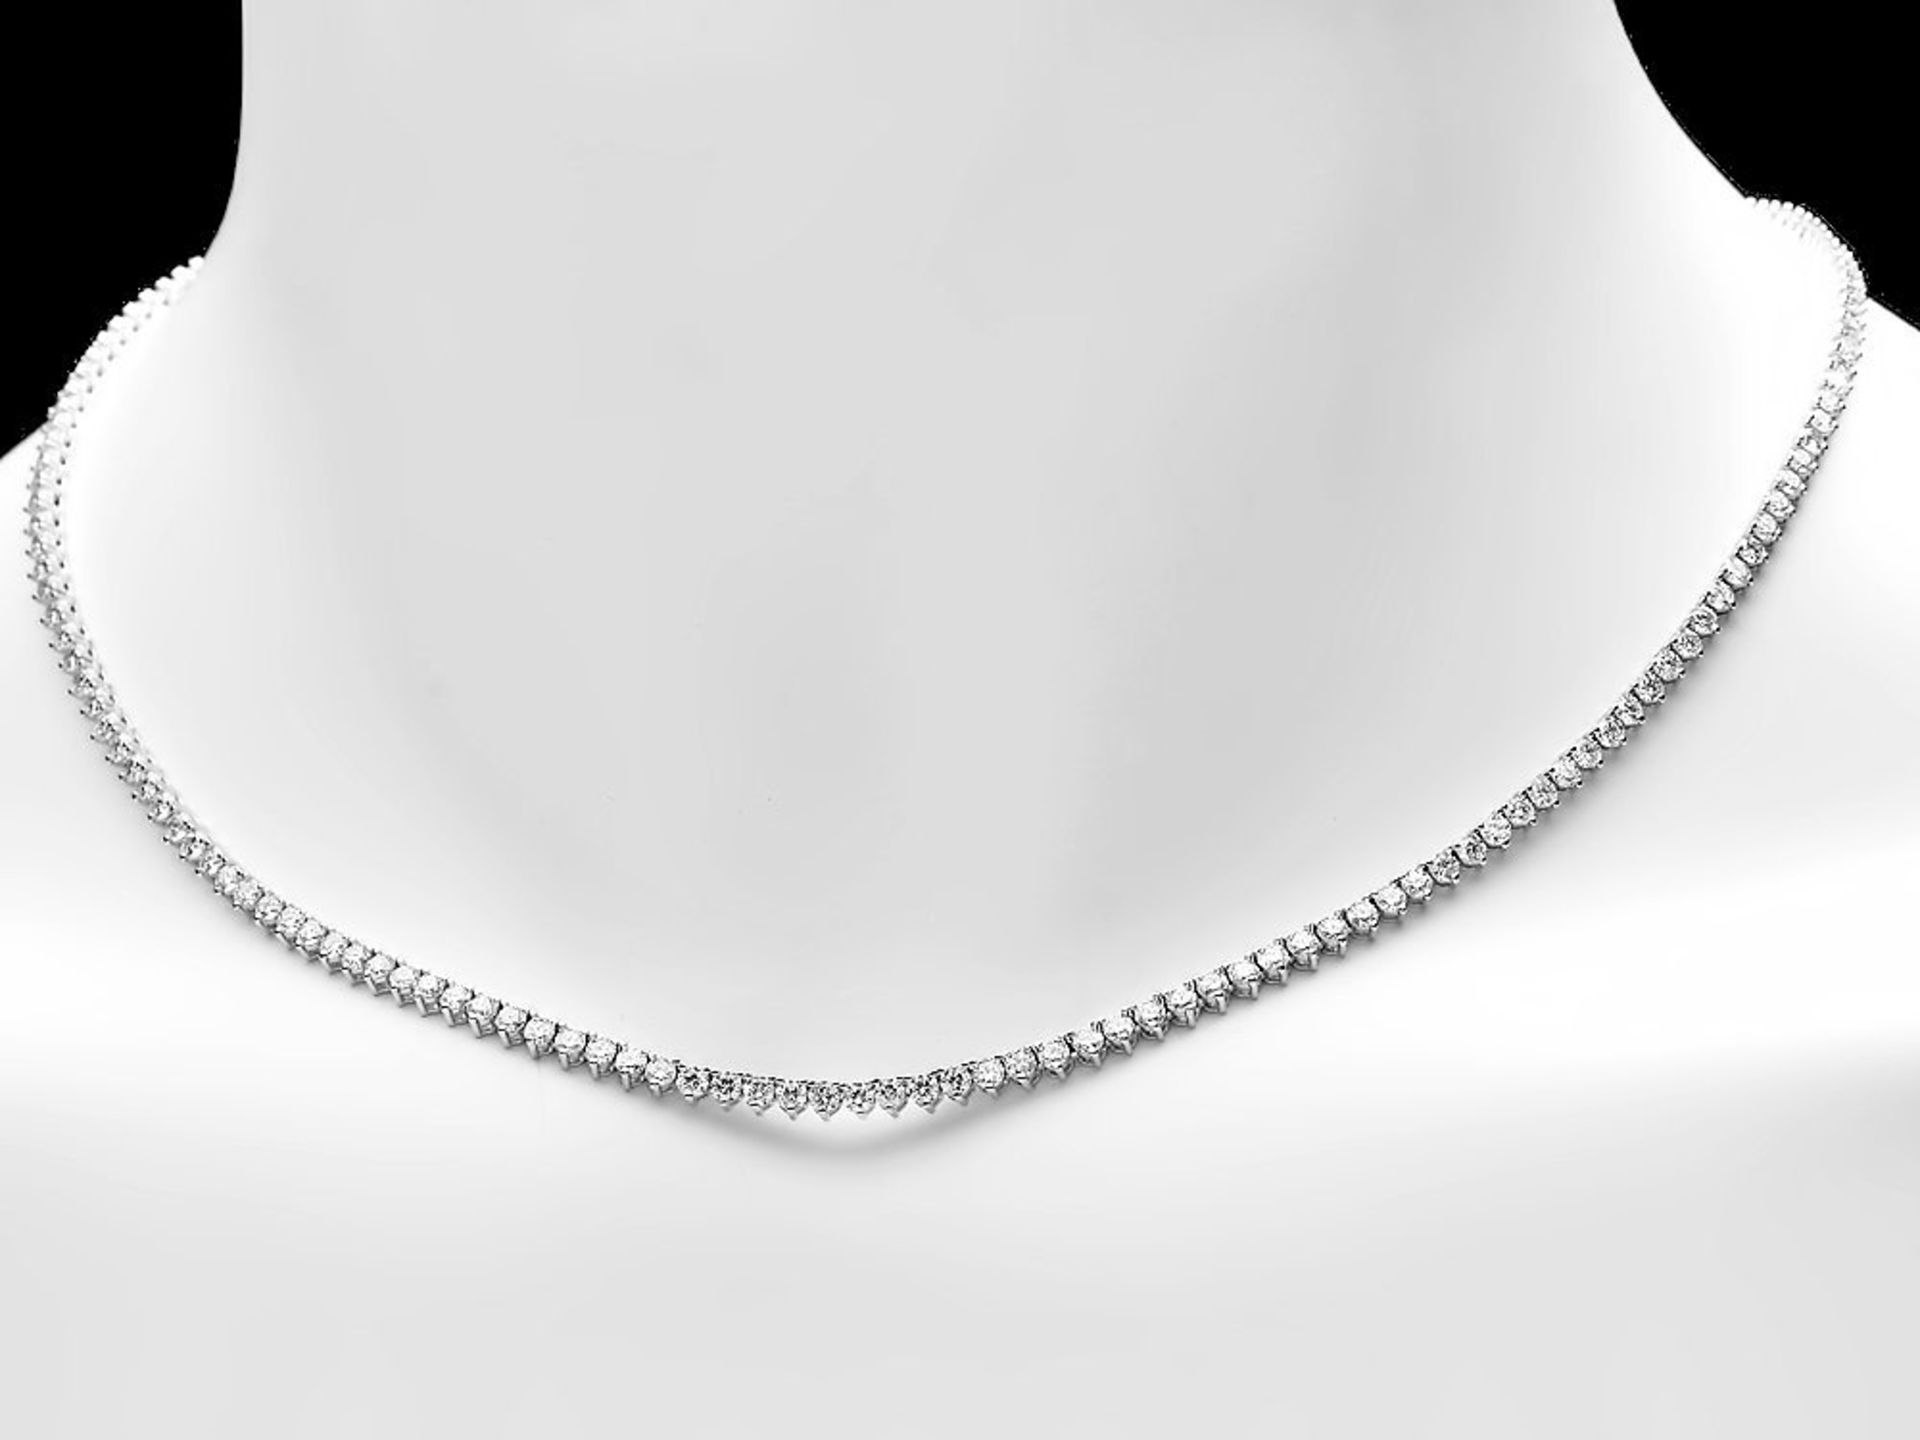 18k White Gold 8.00ct Diamond Necklace - Image 2 of 4